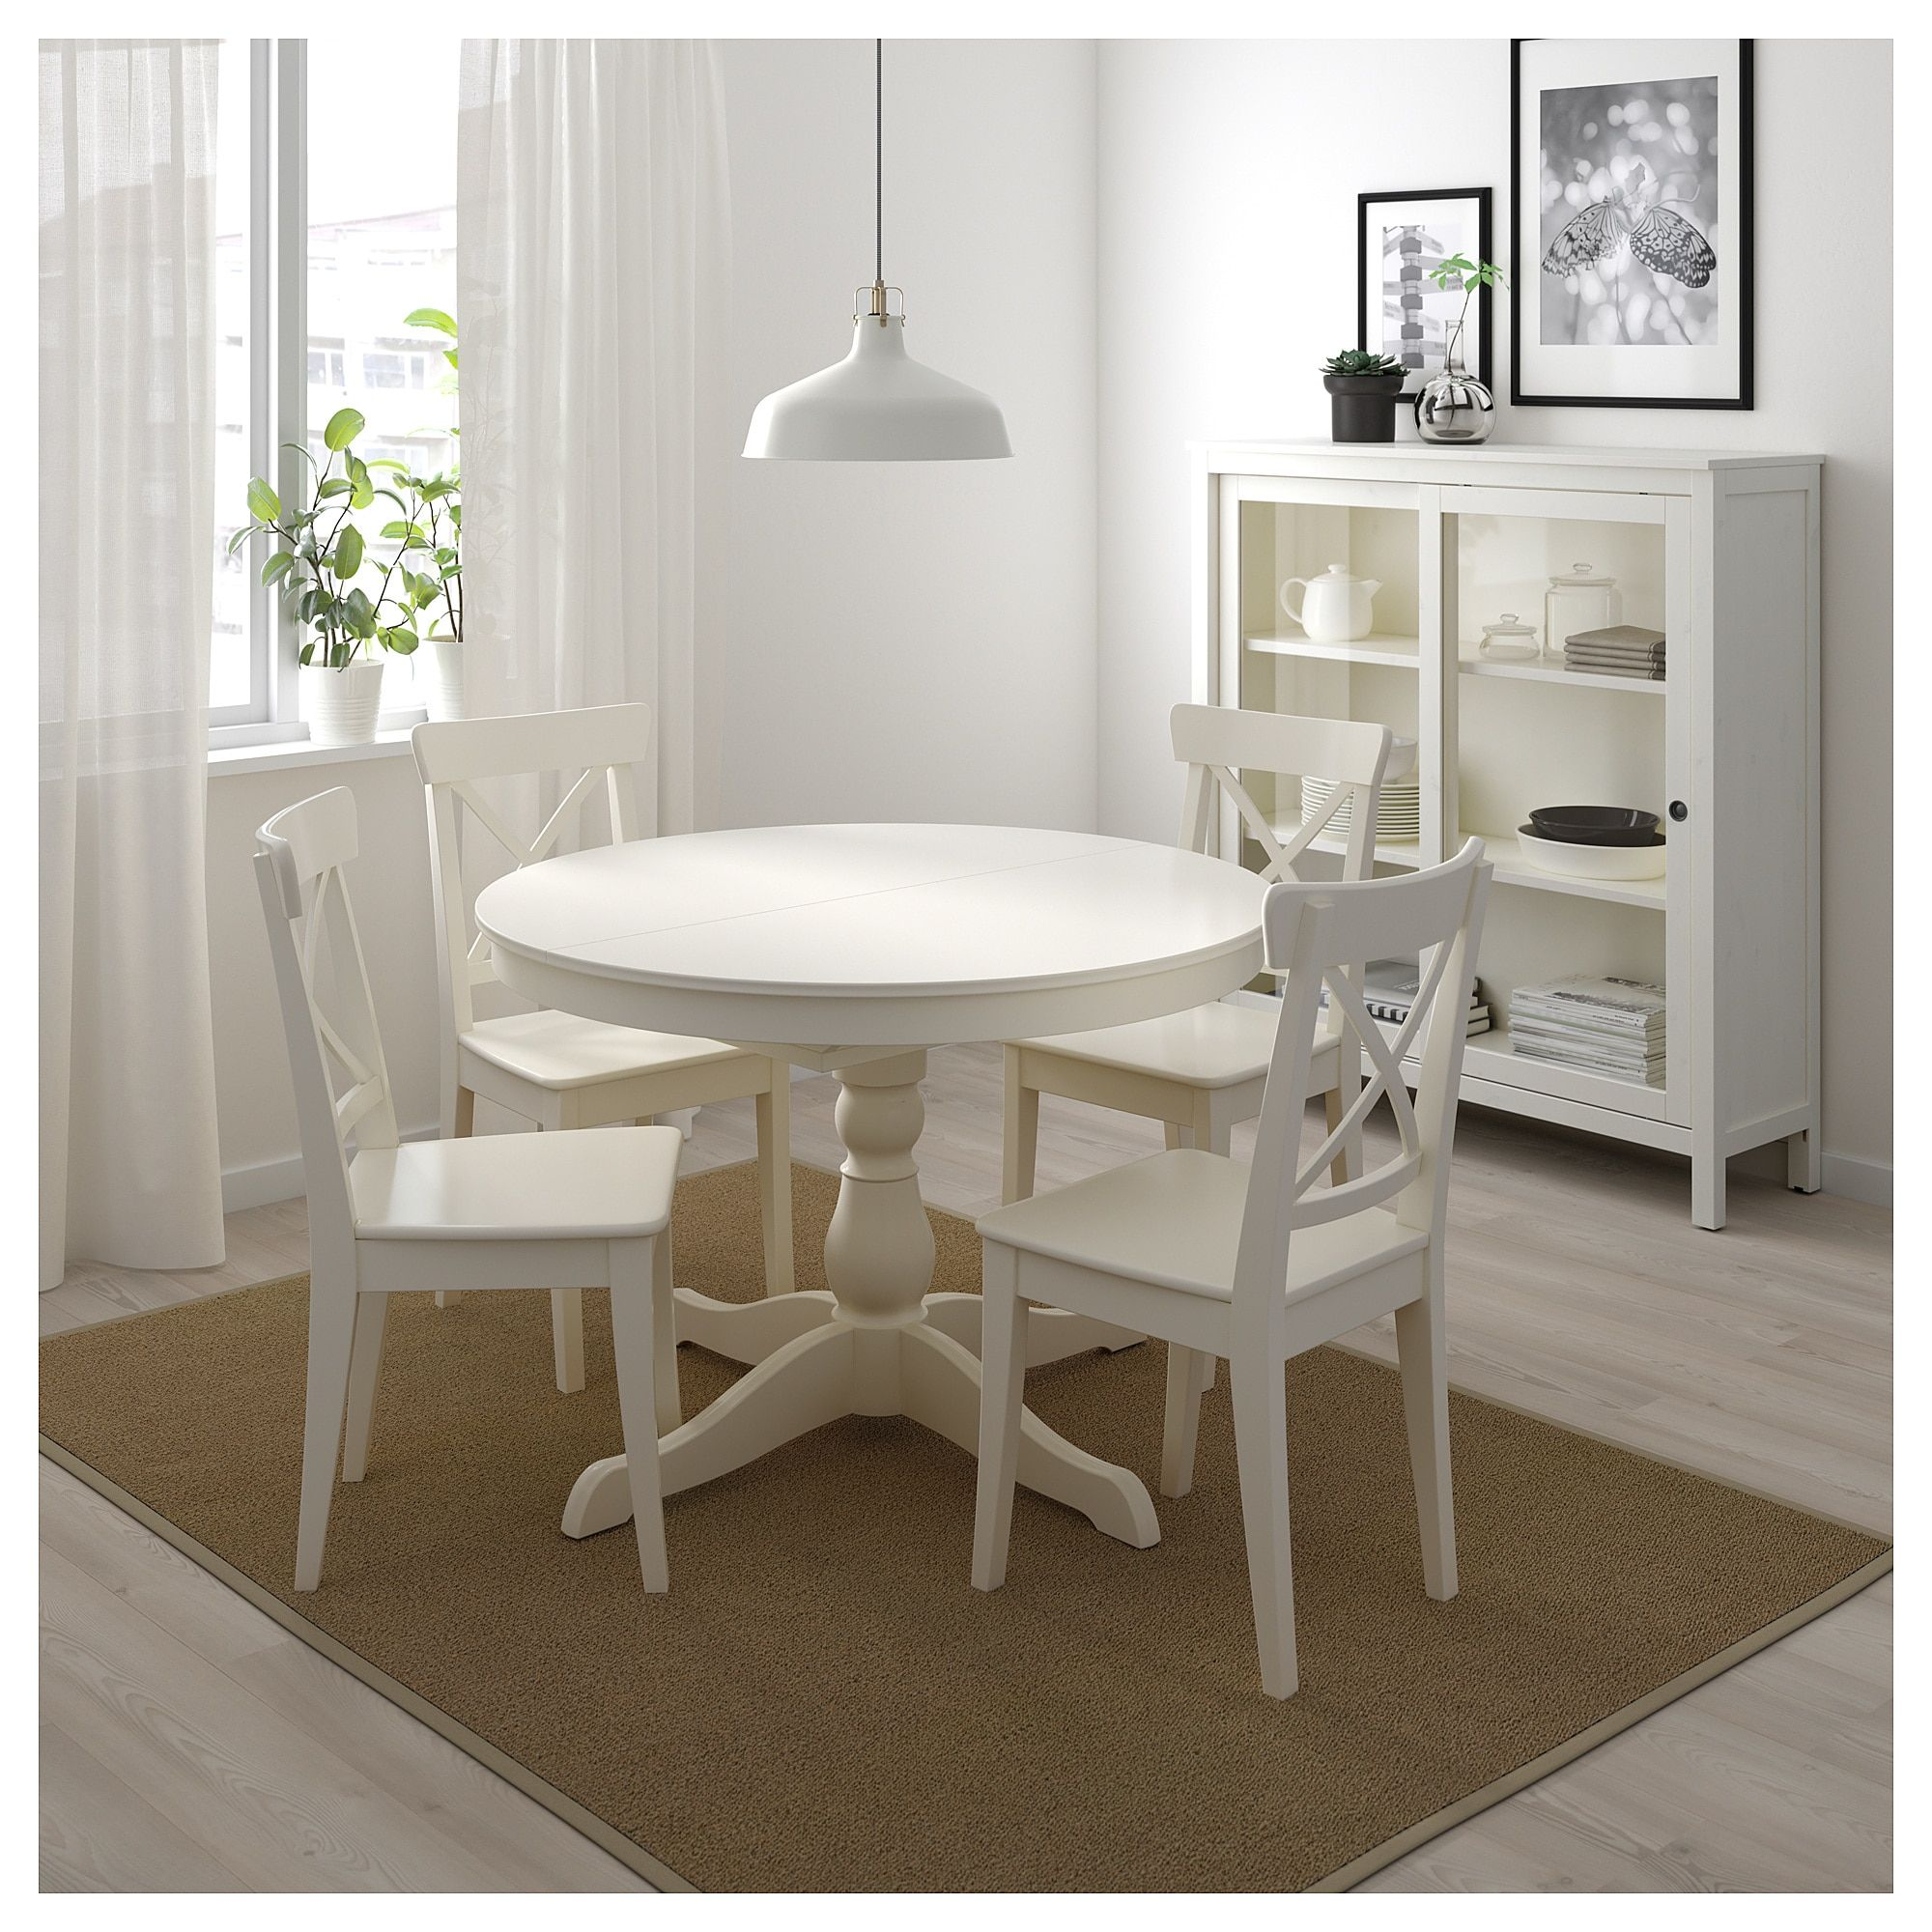 IKEA - INGATORP Extendable table white | Comedores pequeños ...